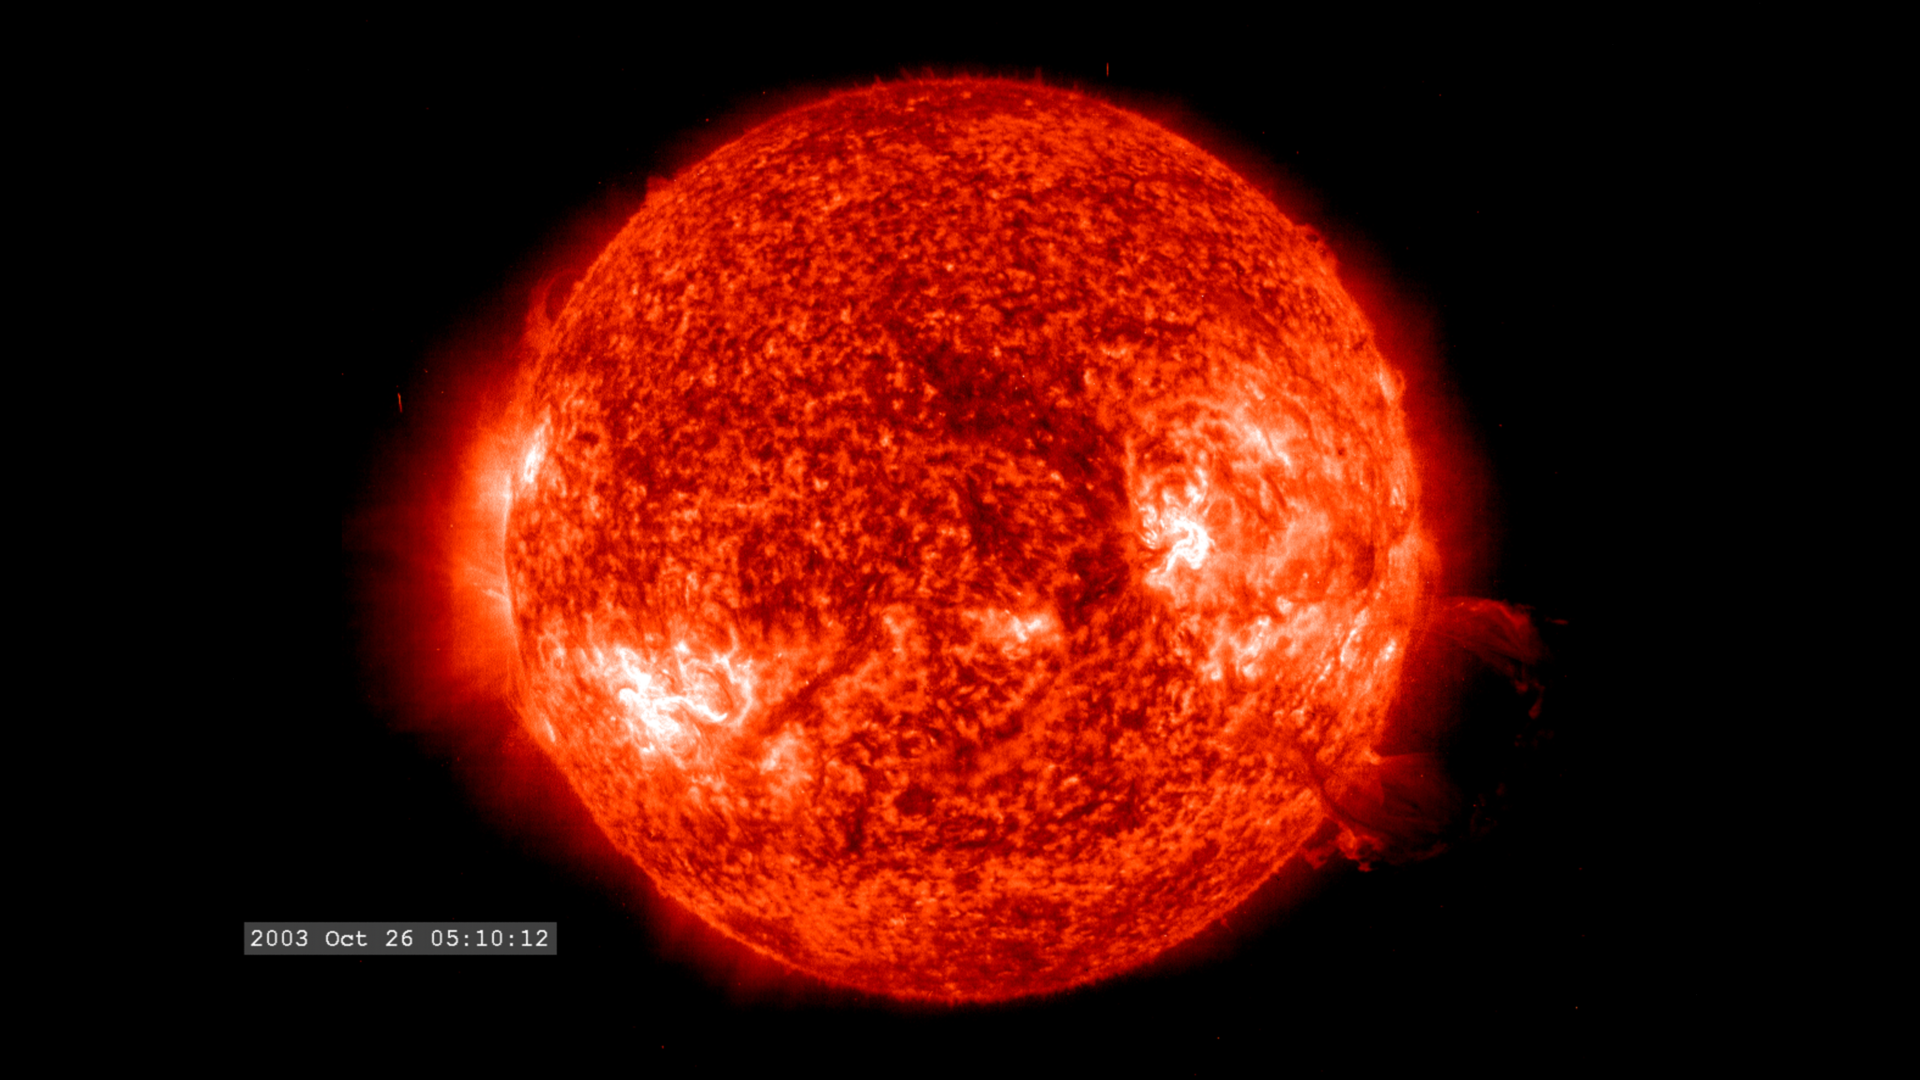 red giant star compared to sun - photo #20